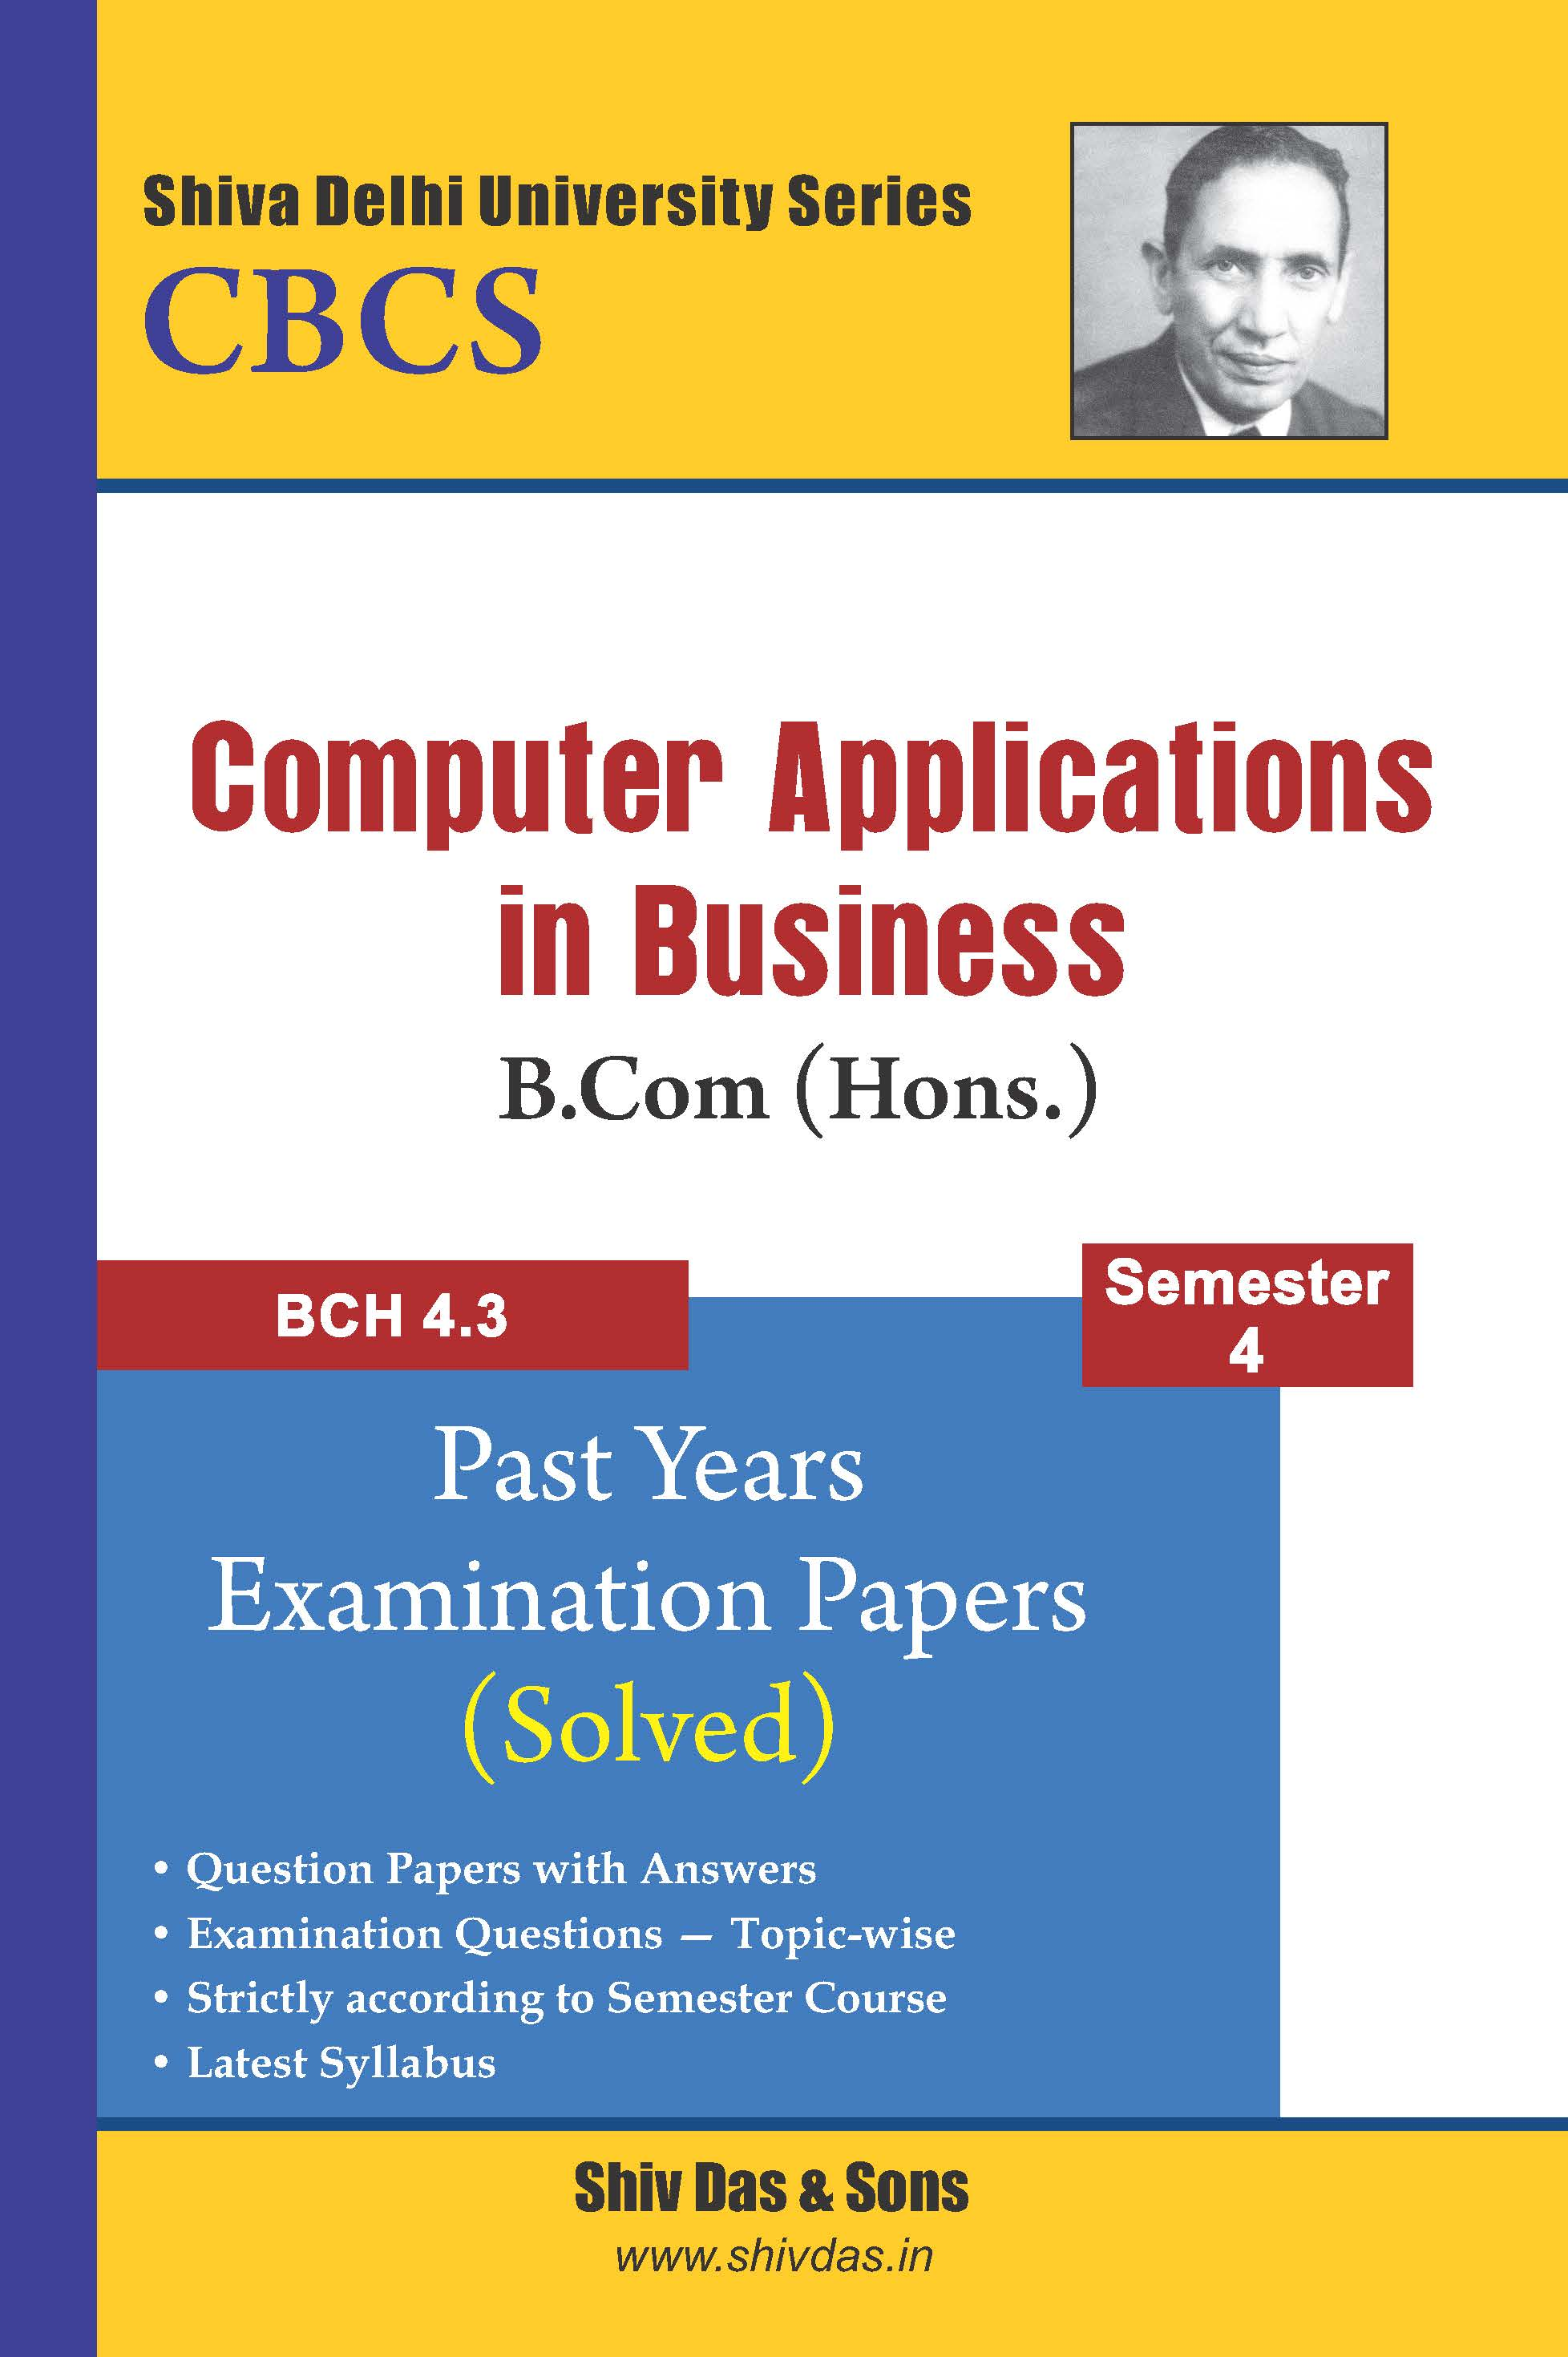 B.Com Hons. Semester-4 Computer Applications in Business